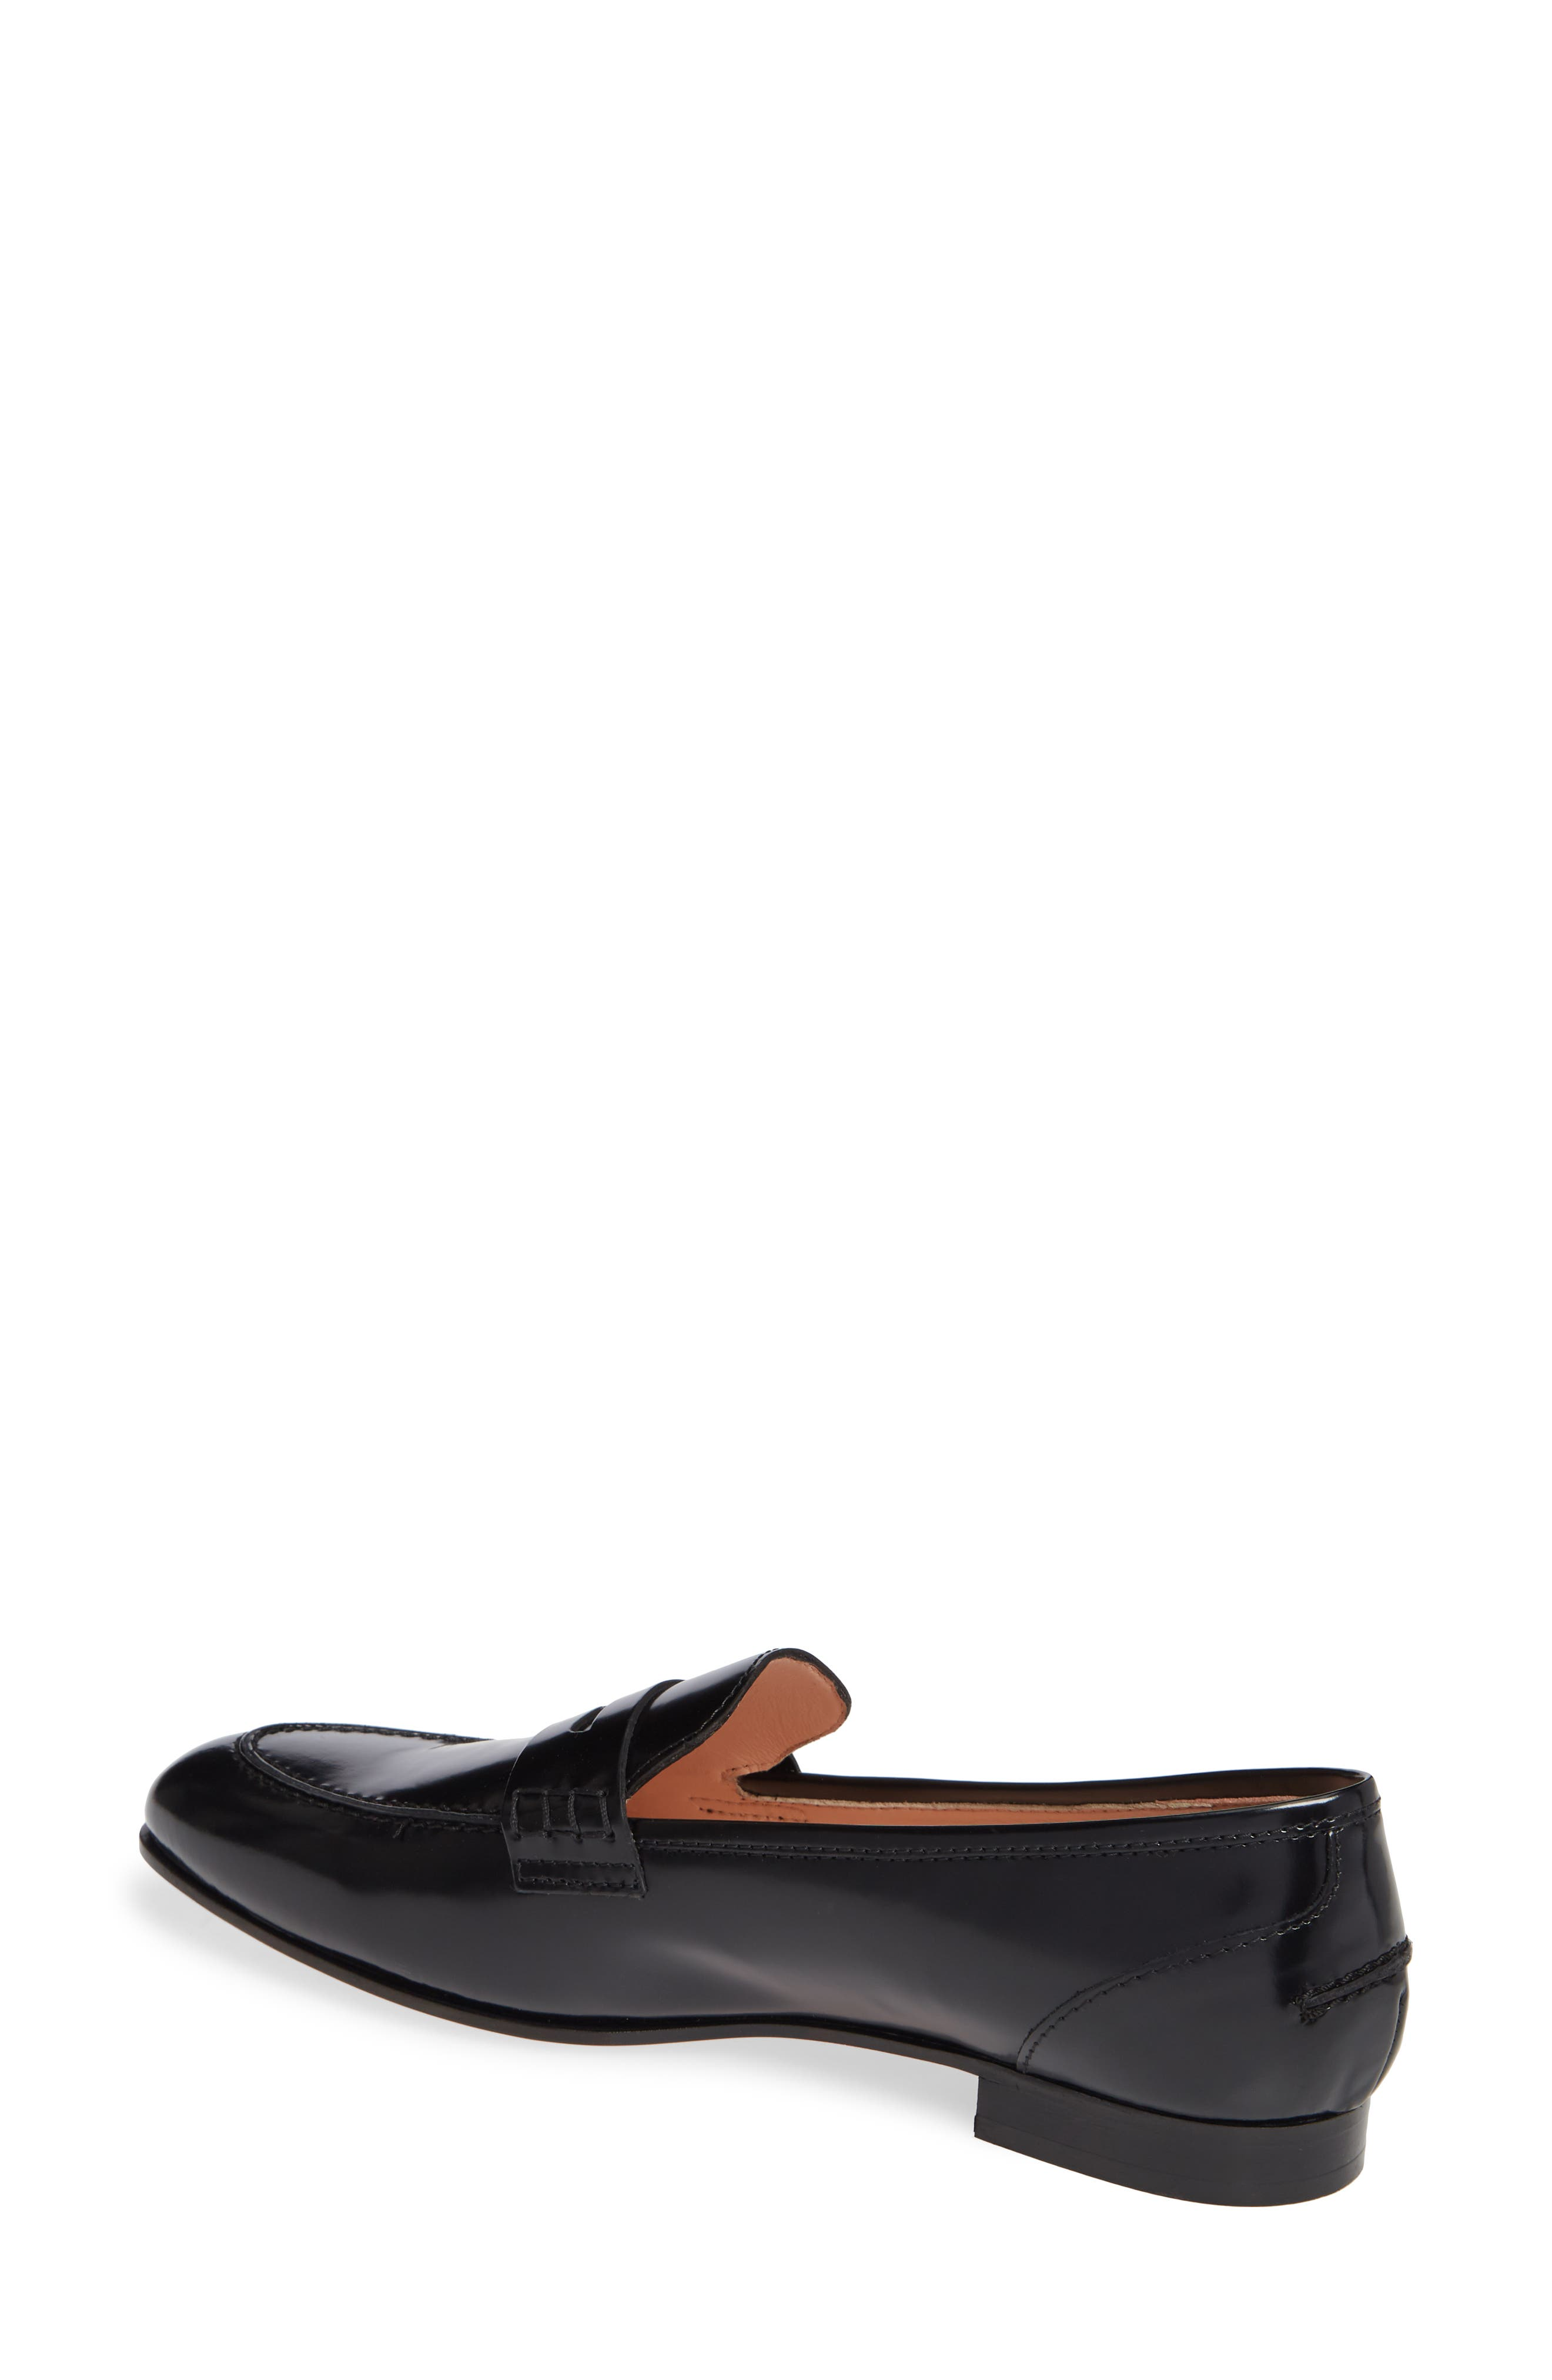 Academy Penny Loafer,                             Alternate thumbnail 2, color,                             BLACK LEATHER